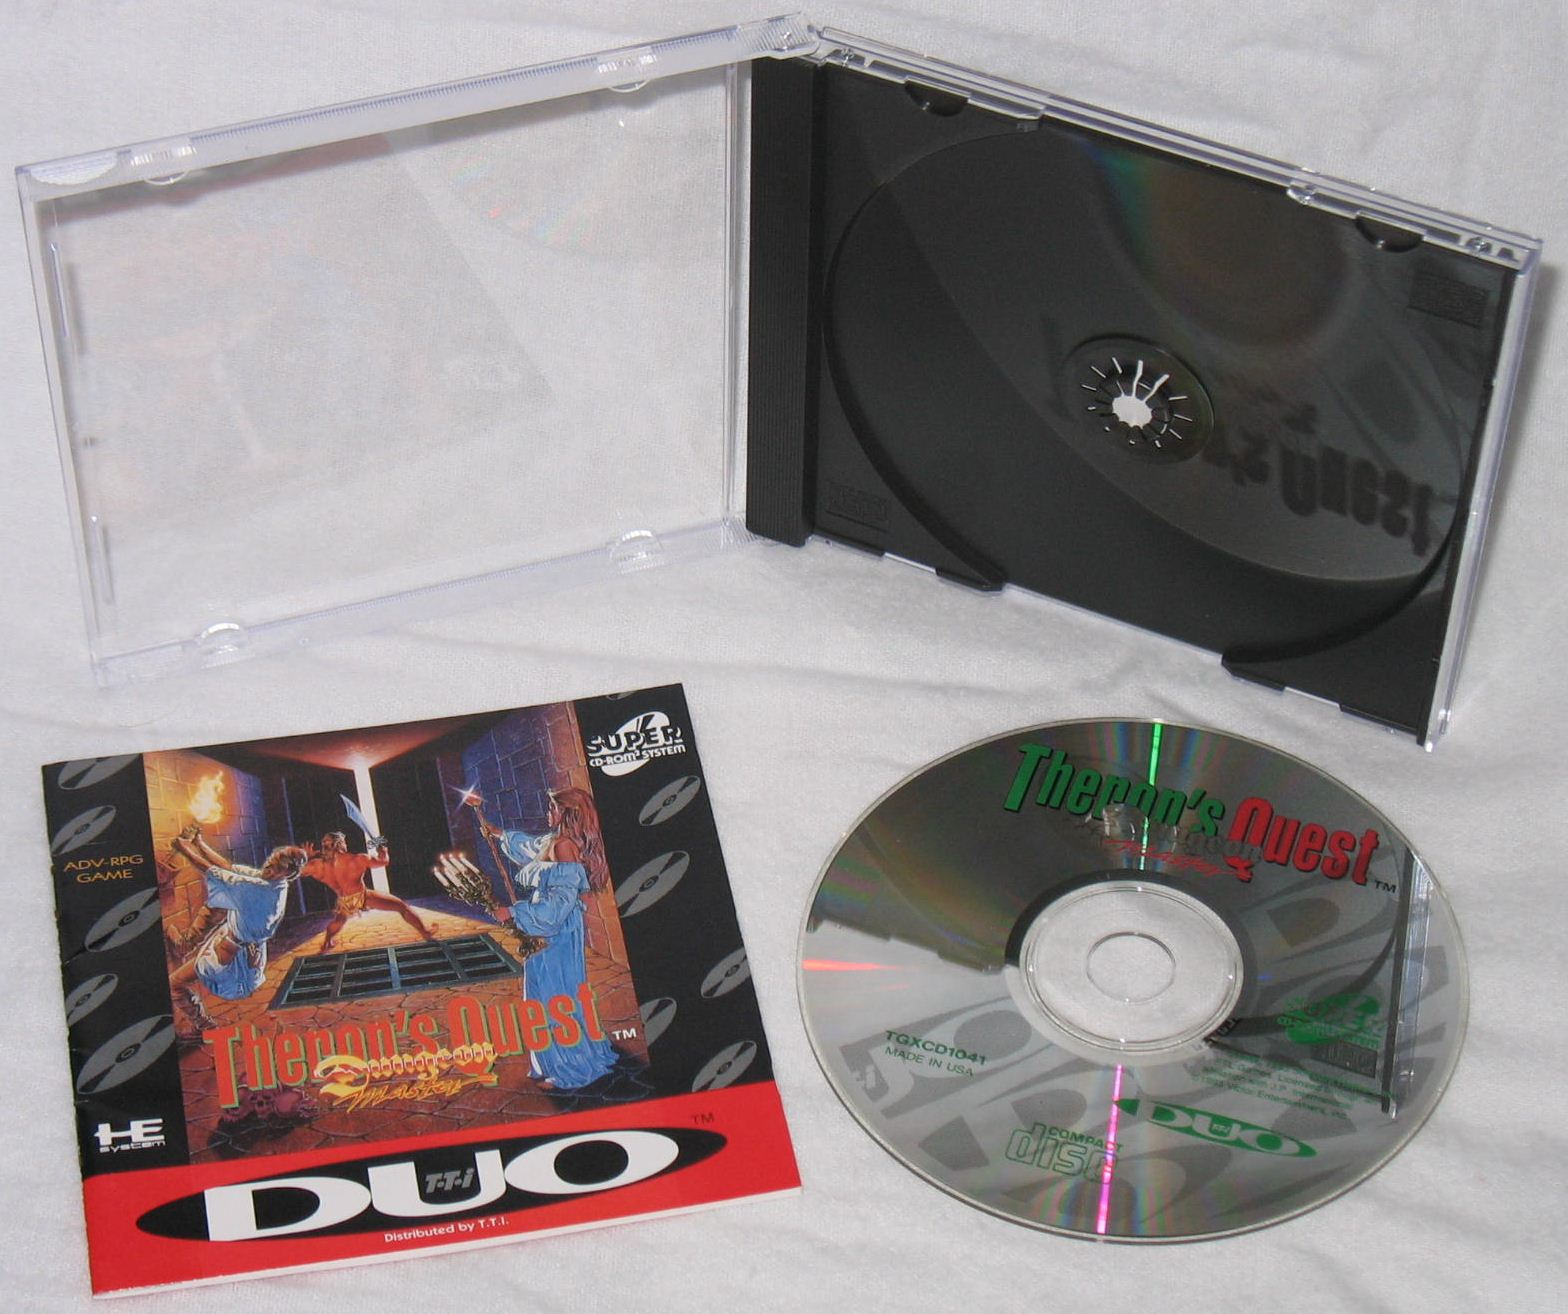 Game - Theron's Quest - US - Turbografx - All - Overview - Photo